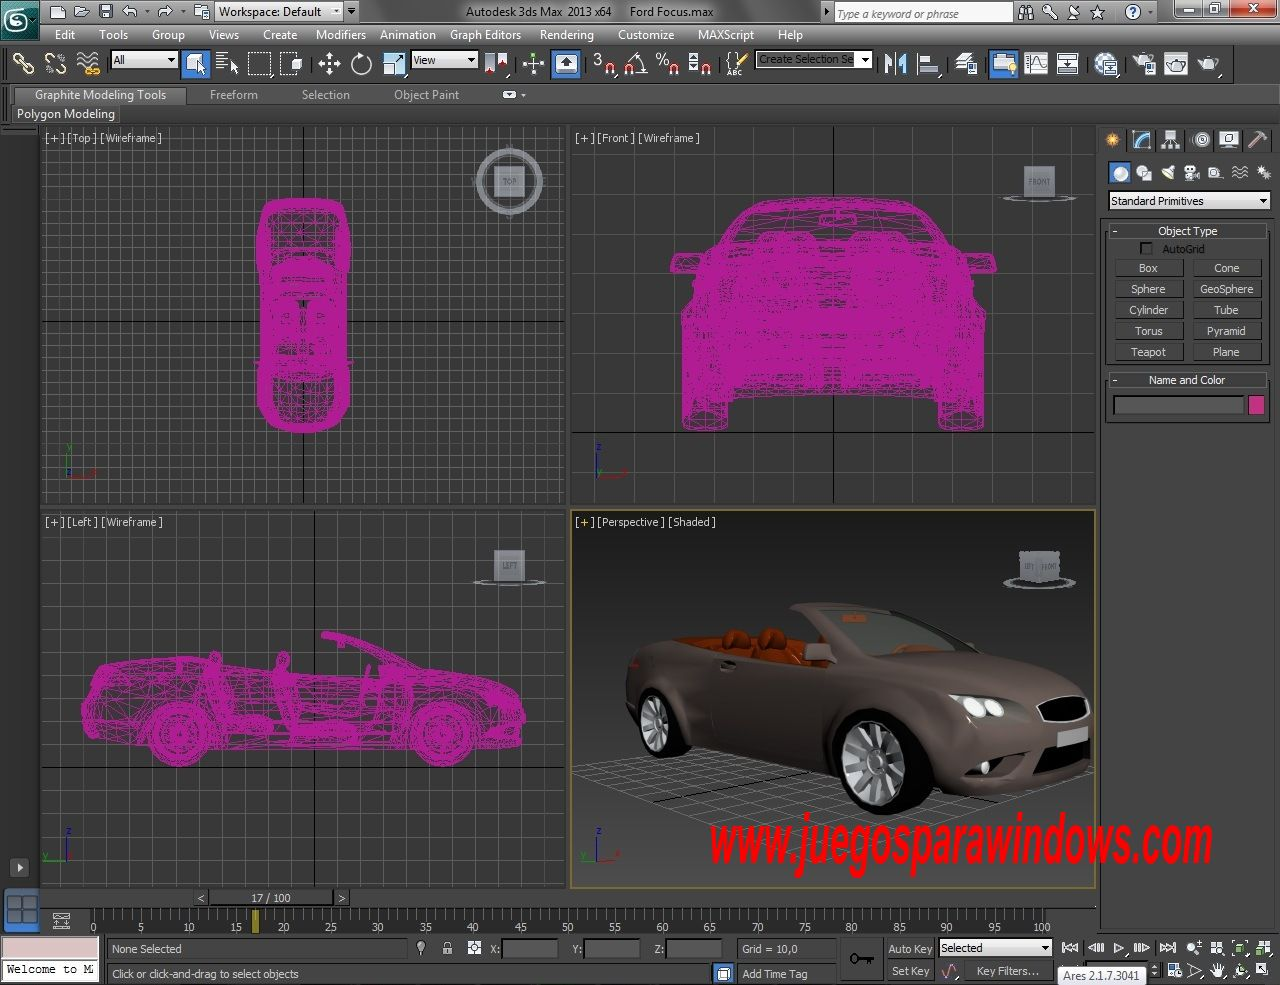 Autodesk 3ds Max 2013 Imagenes Descargar Mediafire PC